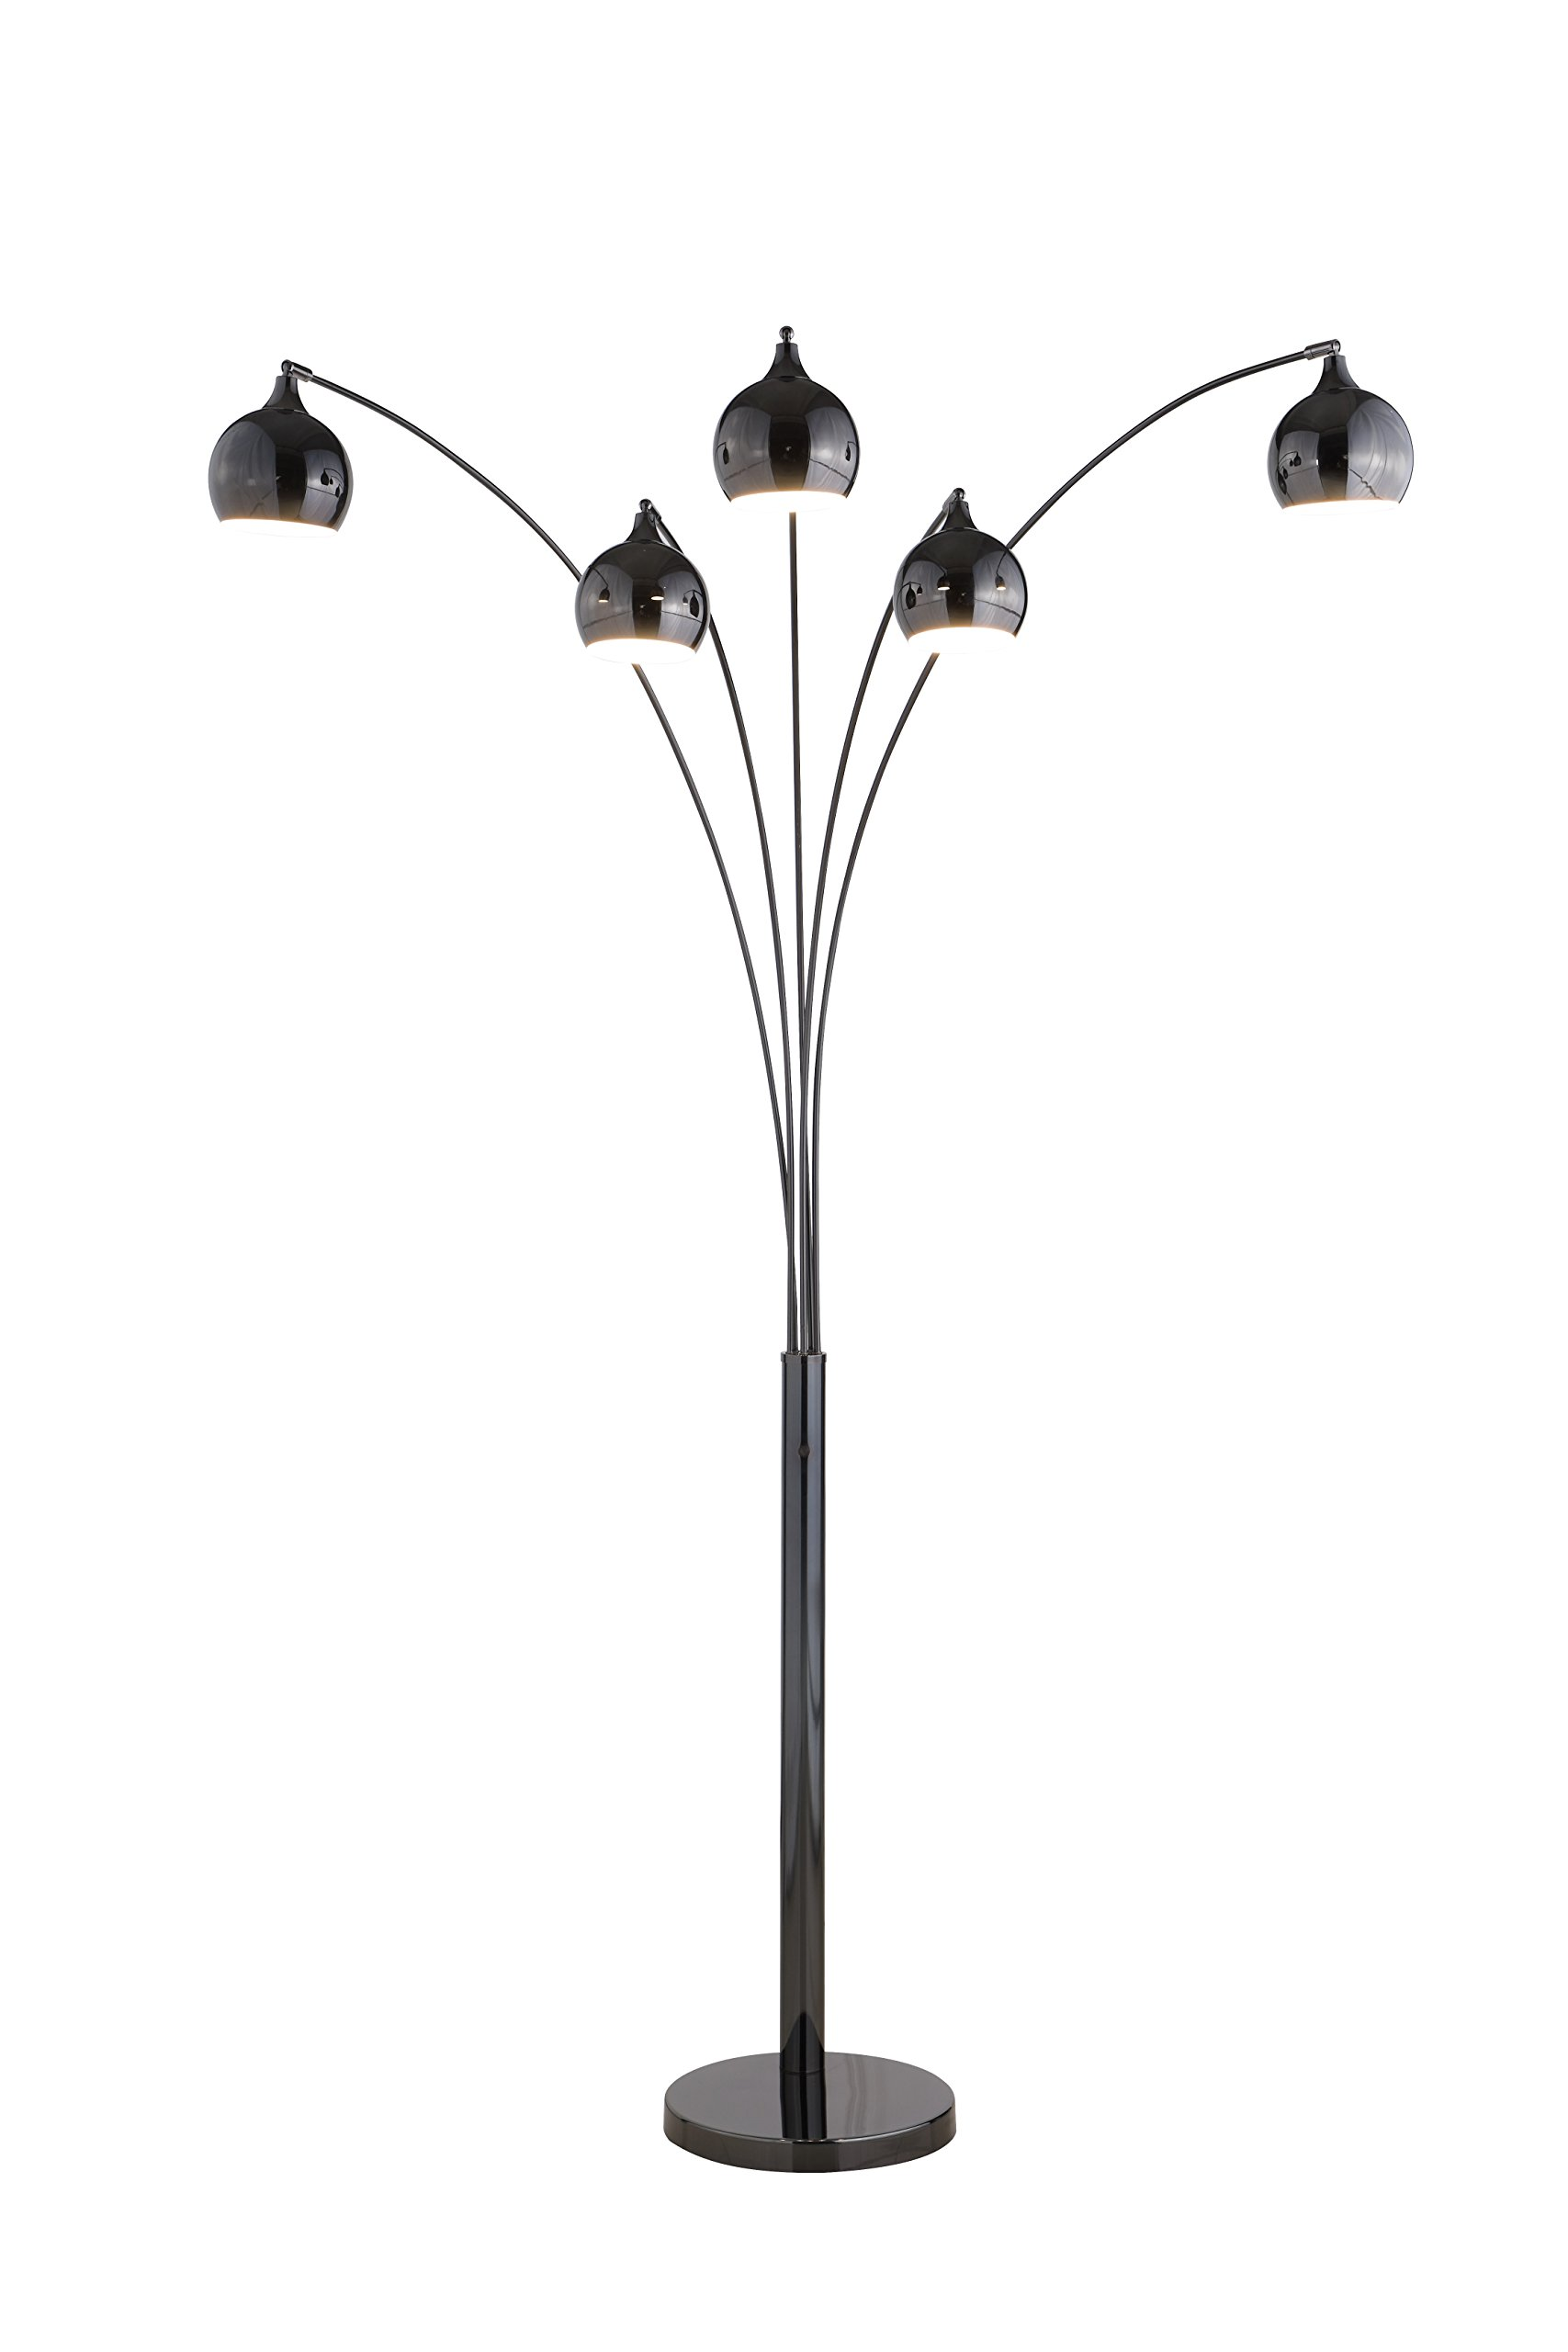 Artiva USA LED9656FJB Amore 86'' 5-Arched Floor Lamp with Dimmer Jet Black